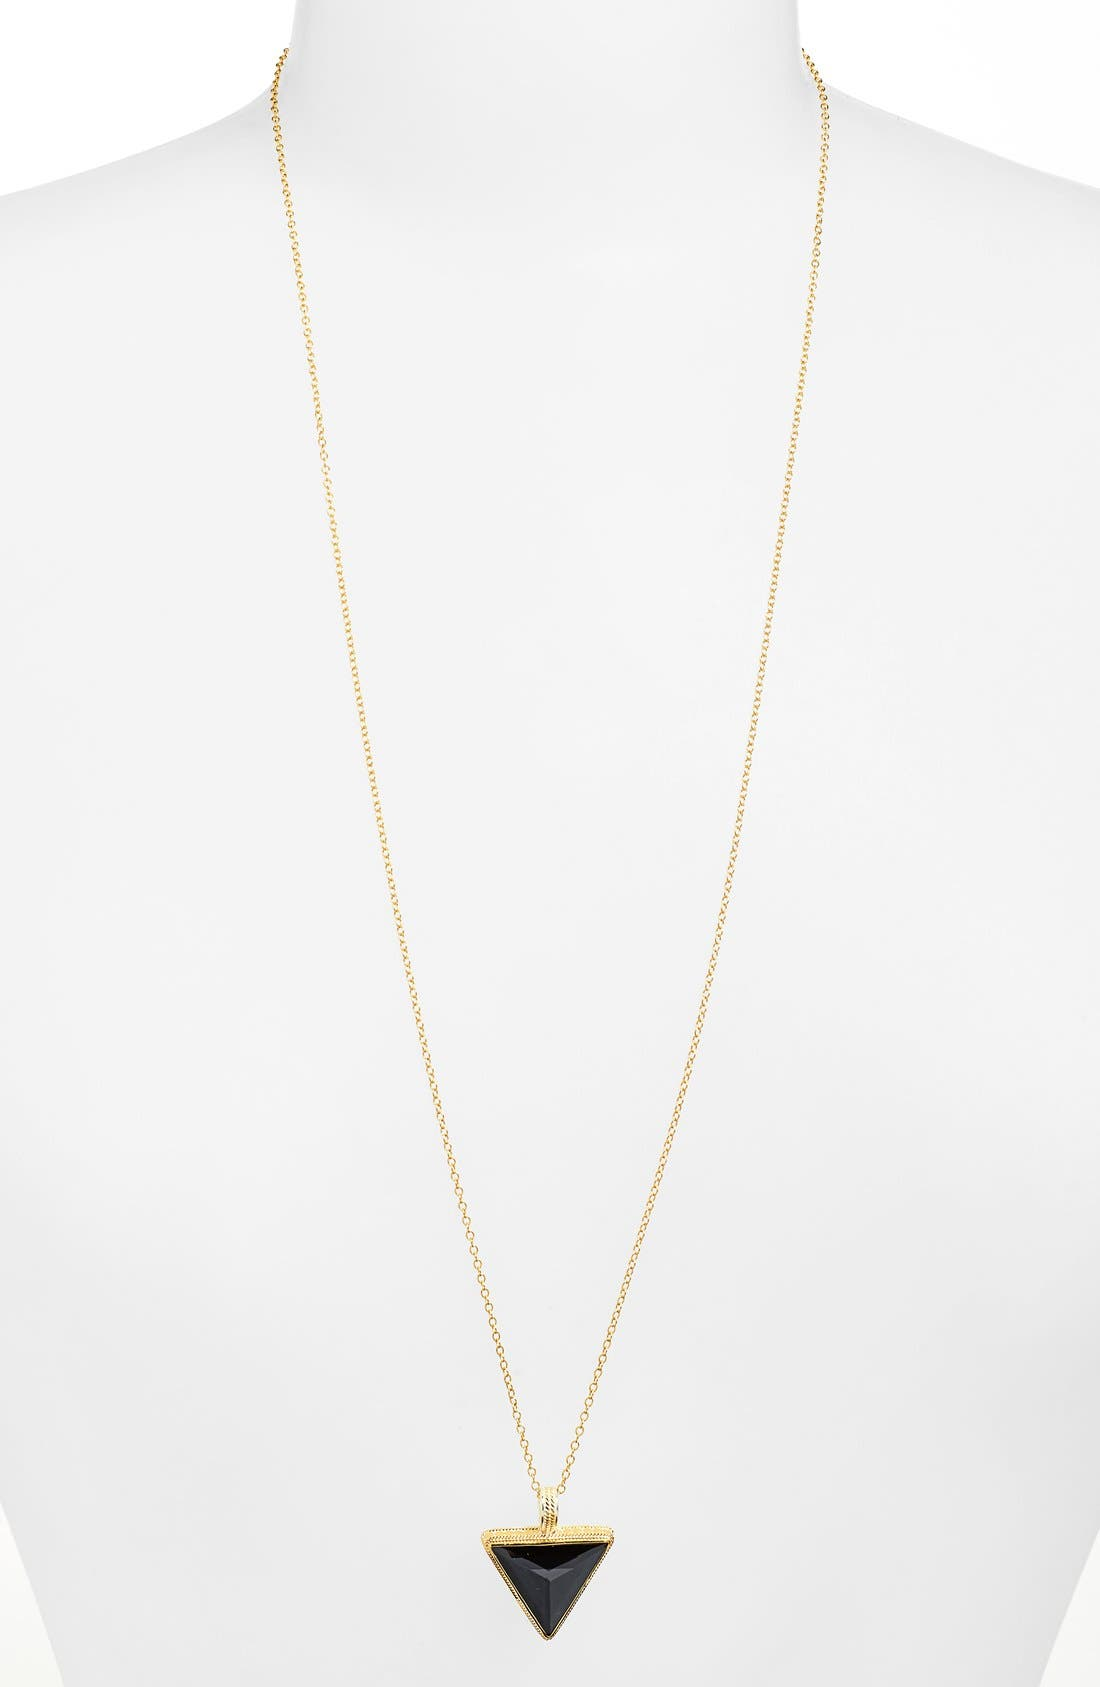 Alternate Image 1 Selected - Anna Beck 'Gili' Triangle Pendant Necklace